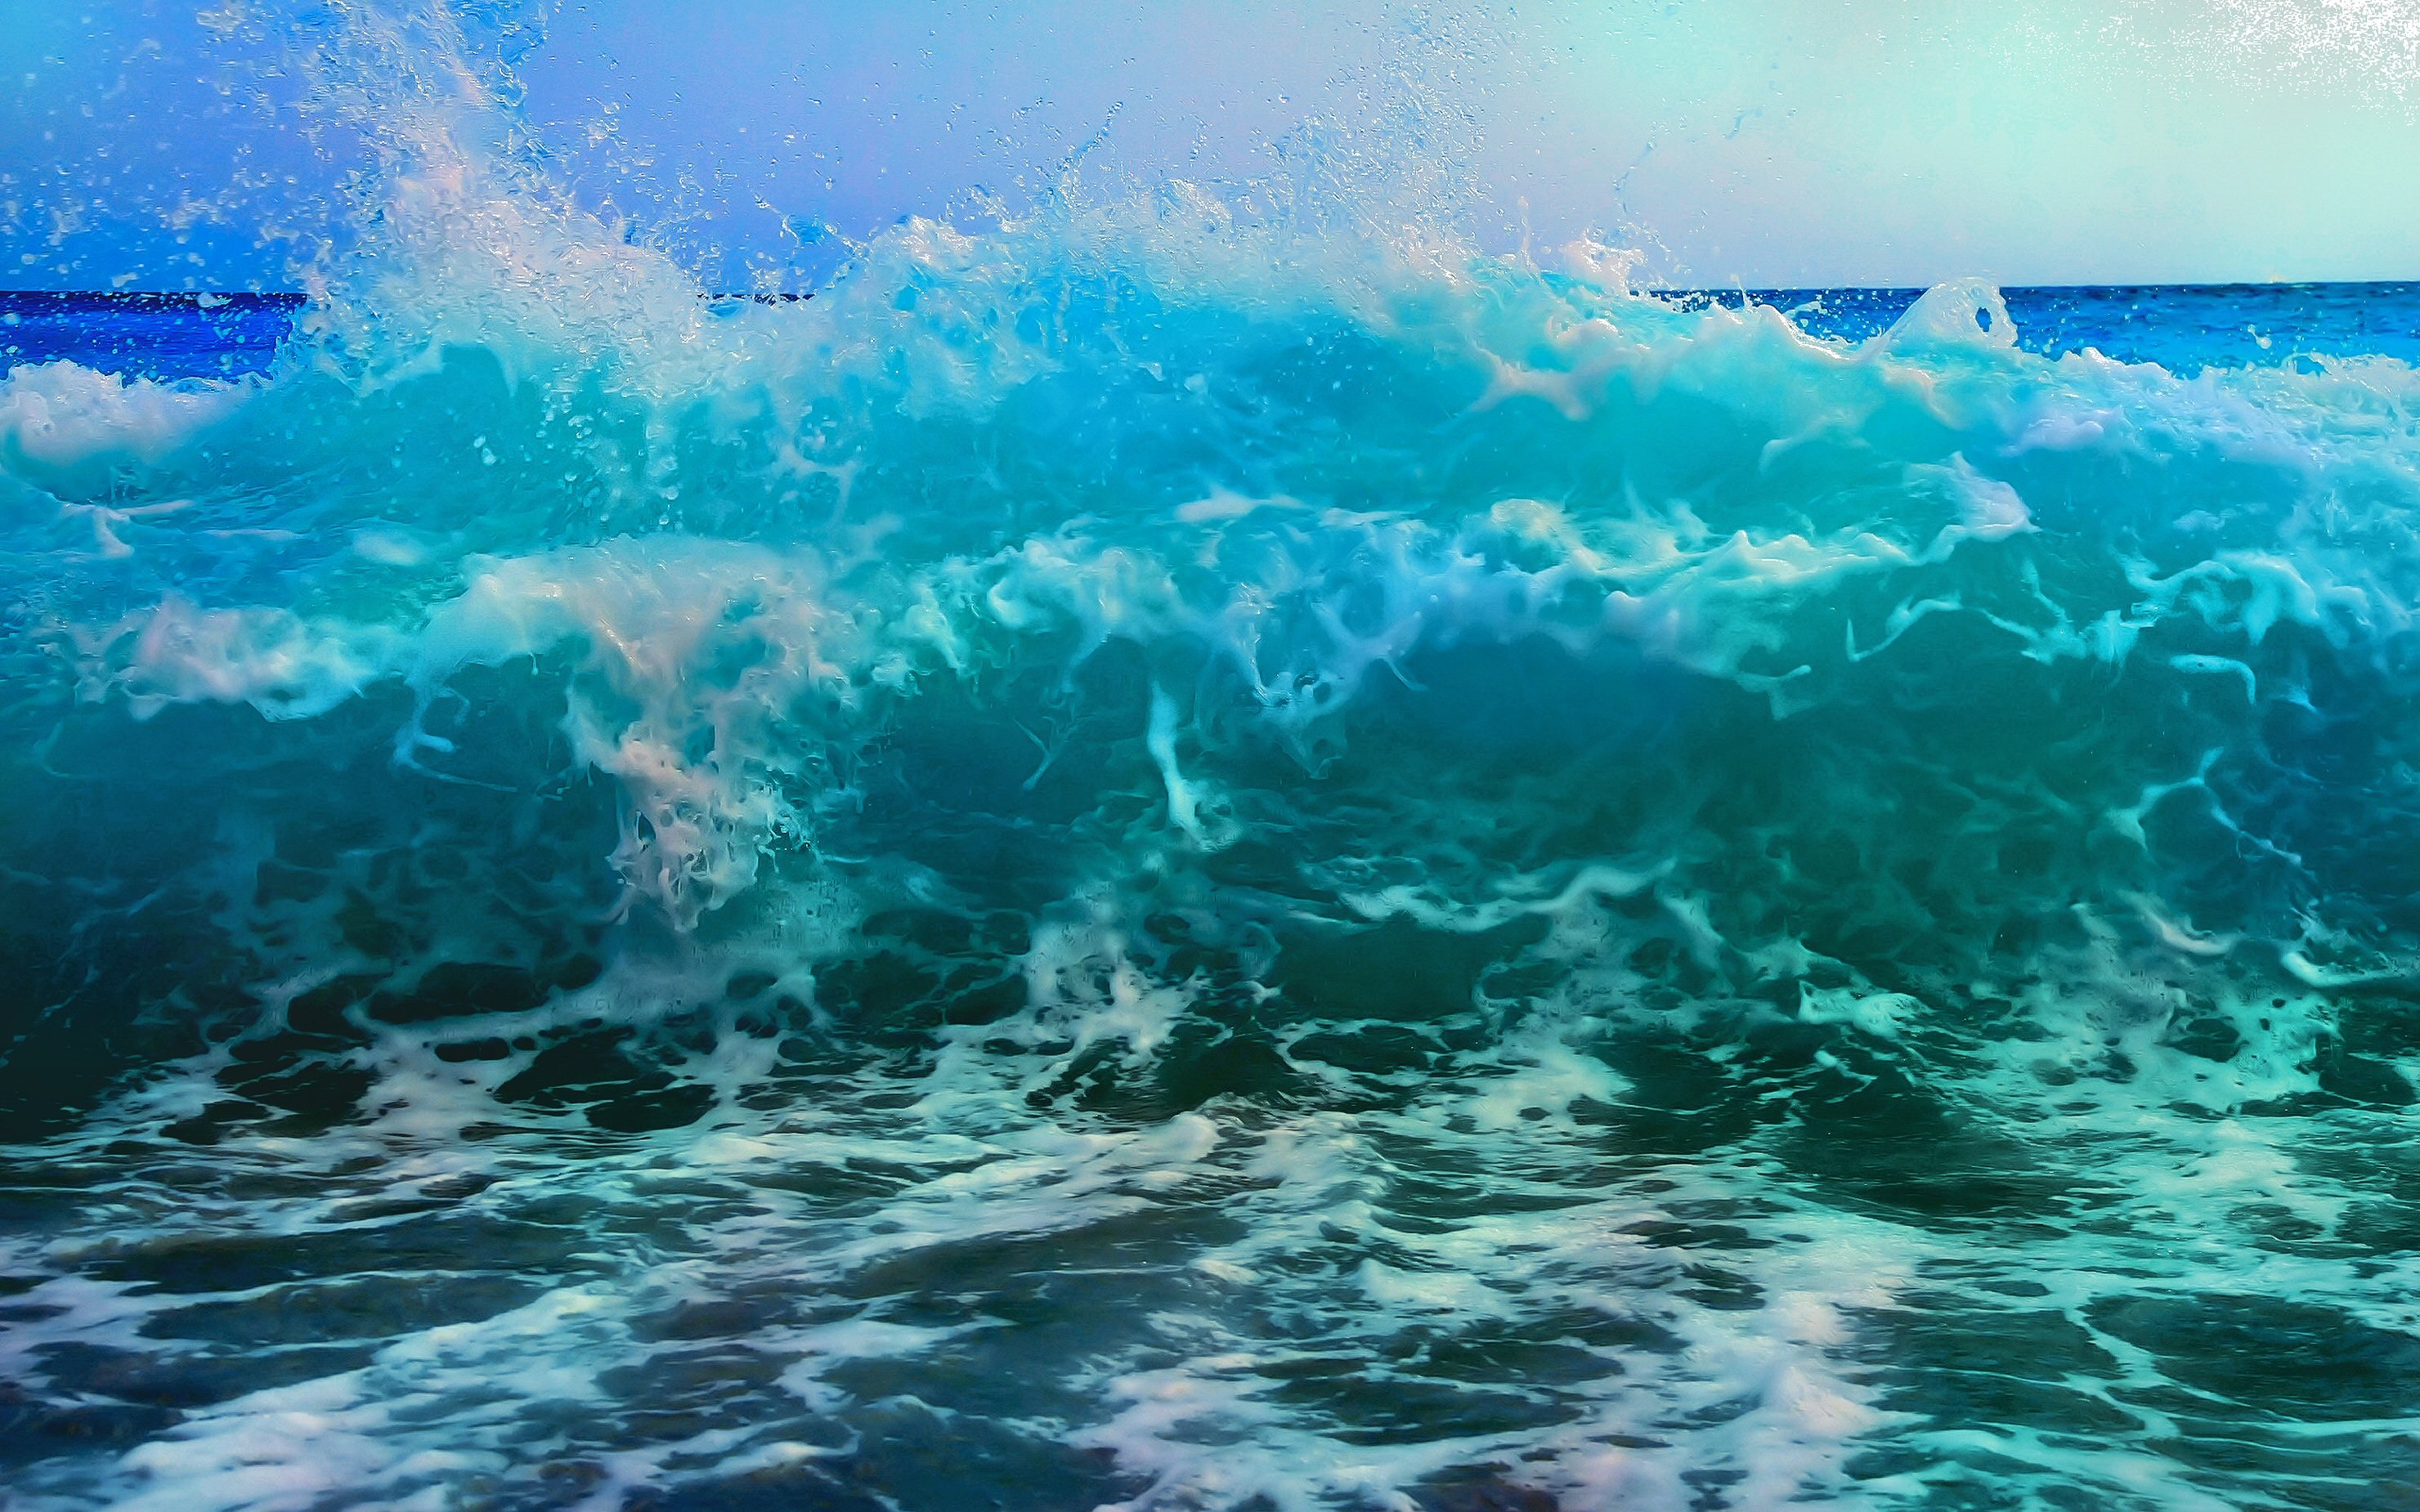 Waves Desktop Wallpaper Posted By John Thompson